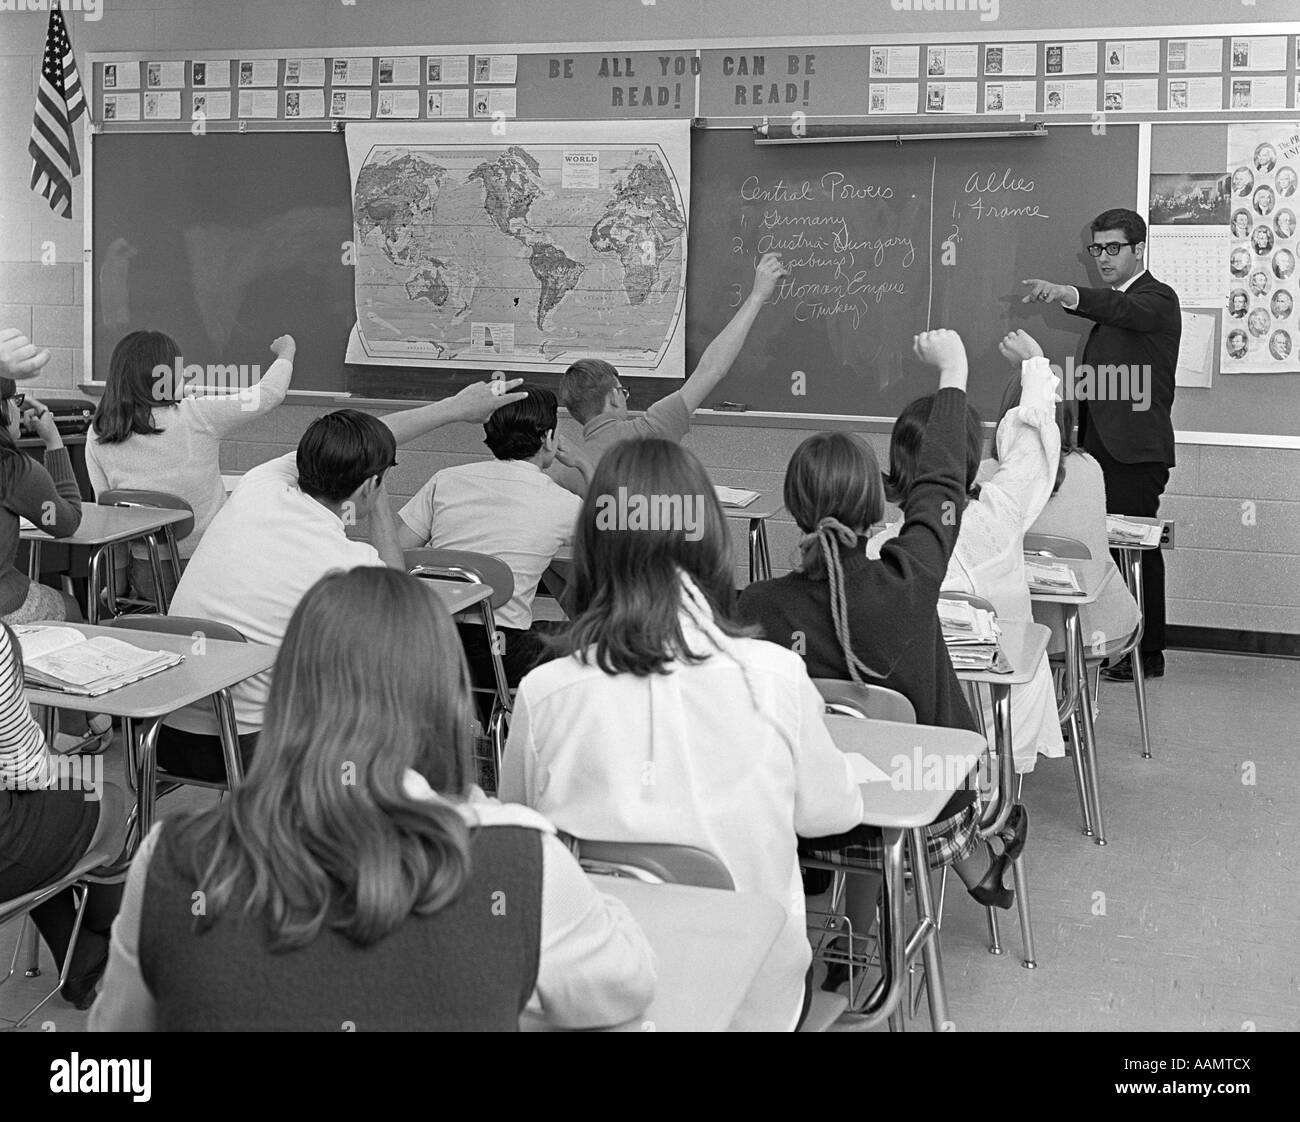 google map funny pics with Stock Photo 1970s Man Teacher Pointing To Raised Hand Teen Classroom Students 12665113 on 1232712056758817 as well Fun2draw I Love U Sign furthermore 1441206849 in addition Ohio According Google Search Auto plete 126161 also Another Scary Mexican.